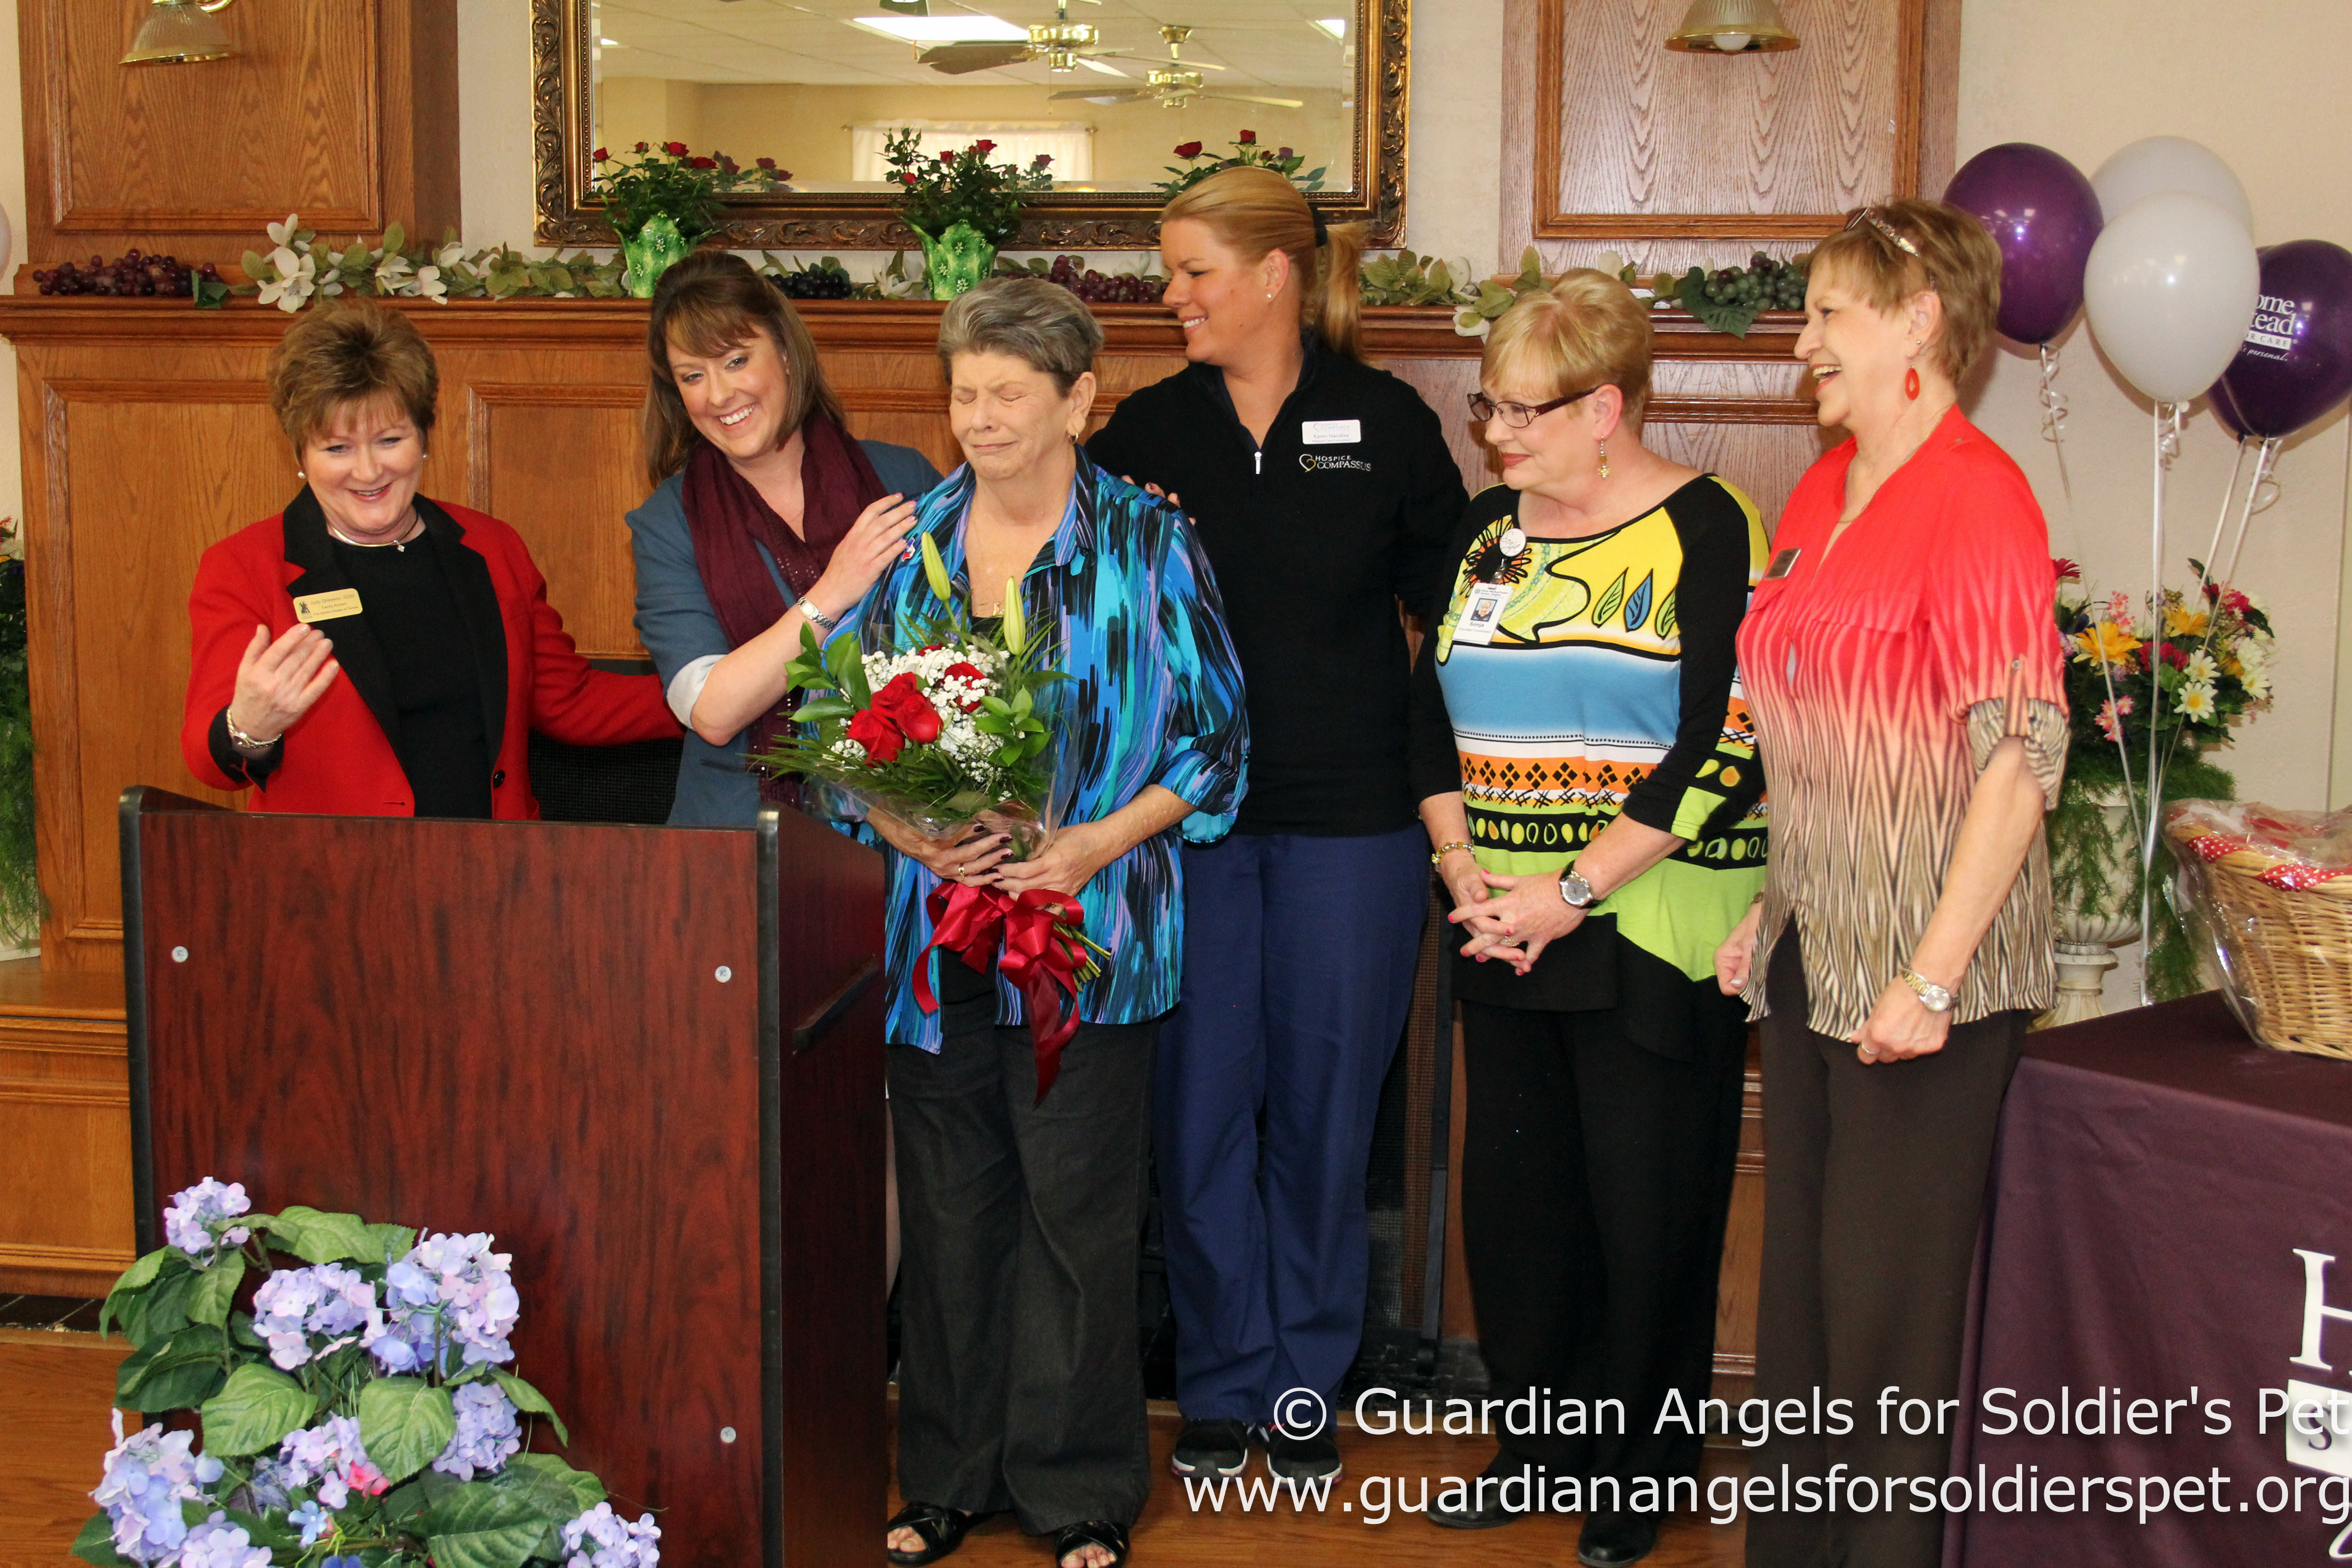 Founder Of Guardian Angels For Soldier S Pet Wins Home Instead Senior Care S Salute To Senior